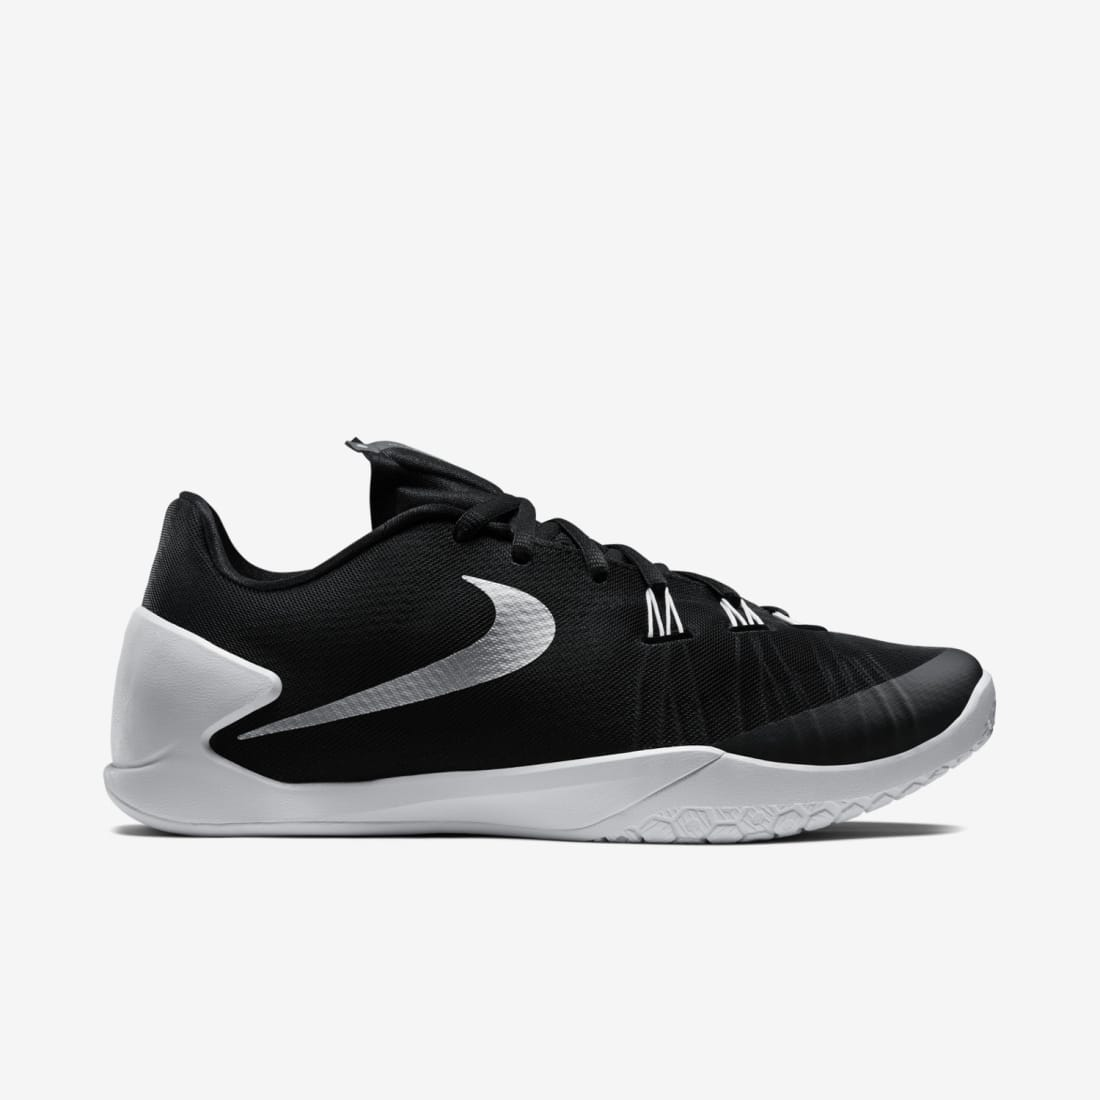 918bf713d7dc Nike · Nike Basketball. Nike Hyperchase. Releases Covered